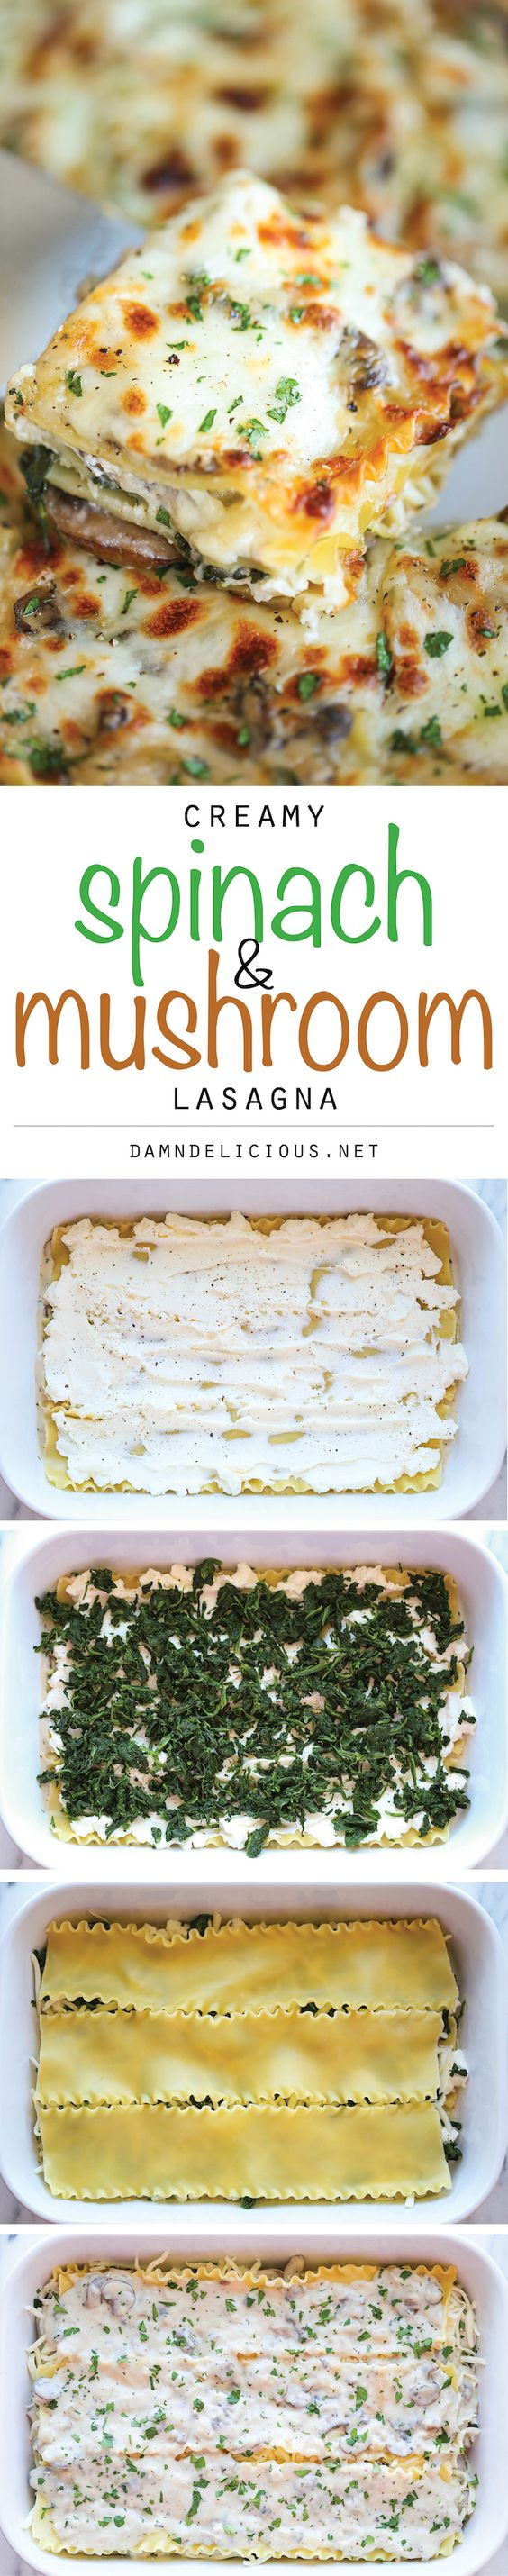 Creamy Spinach and Mushroom Lasagna - This is sure to become a family favorite. Best of all, it's freezer-friendly and can also be made ahead of time!